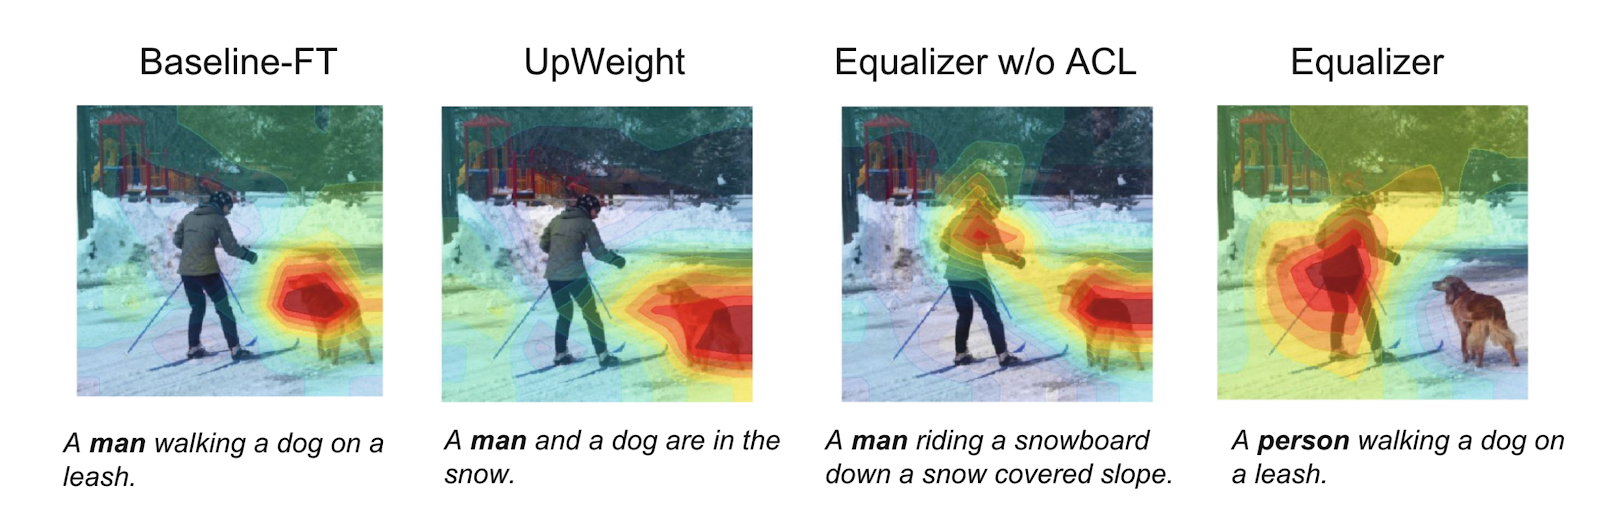 Comparison of how different versions of a system caption the image of a snowboarder seen from behind (Hendricks et al. 2018)